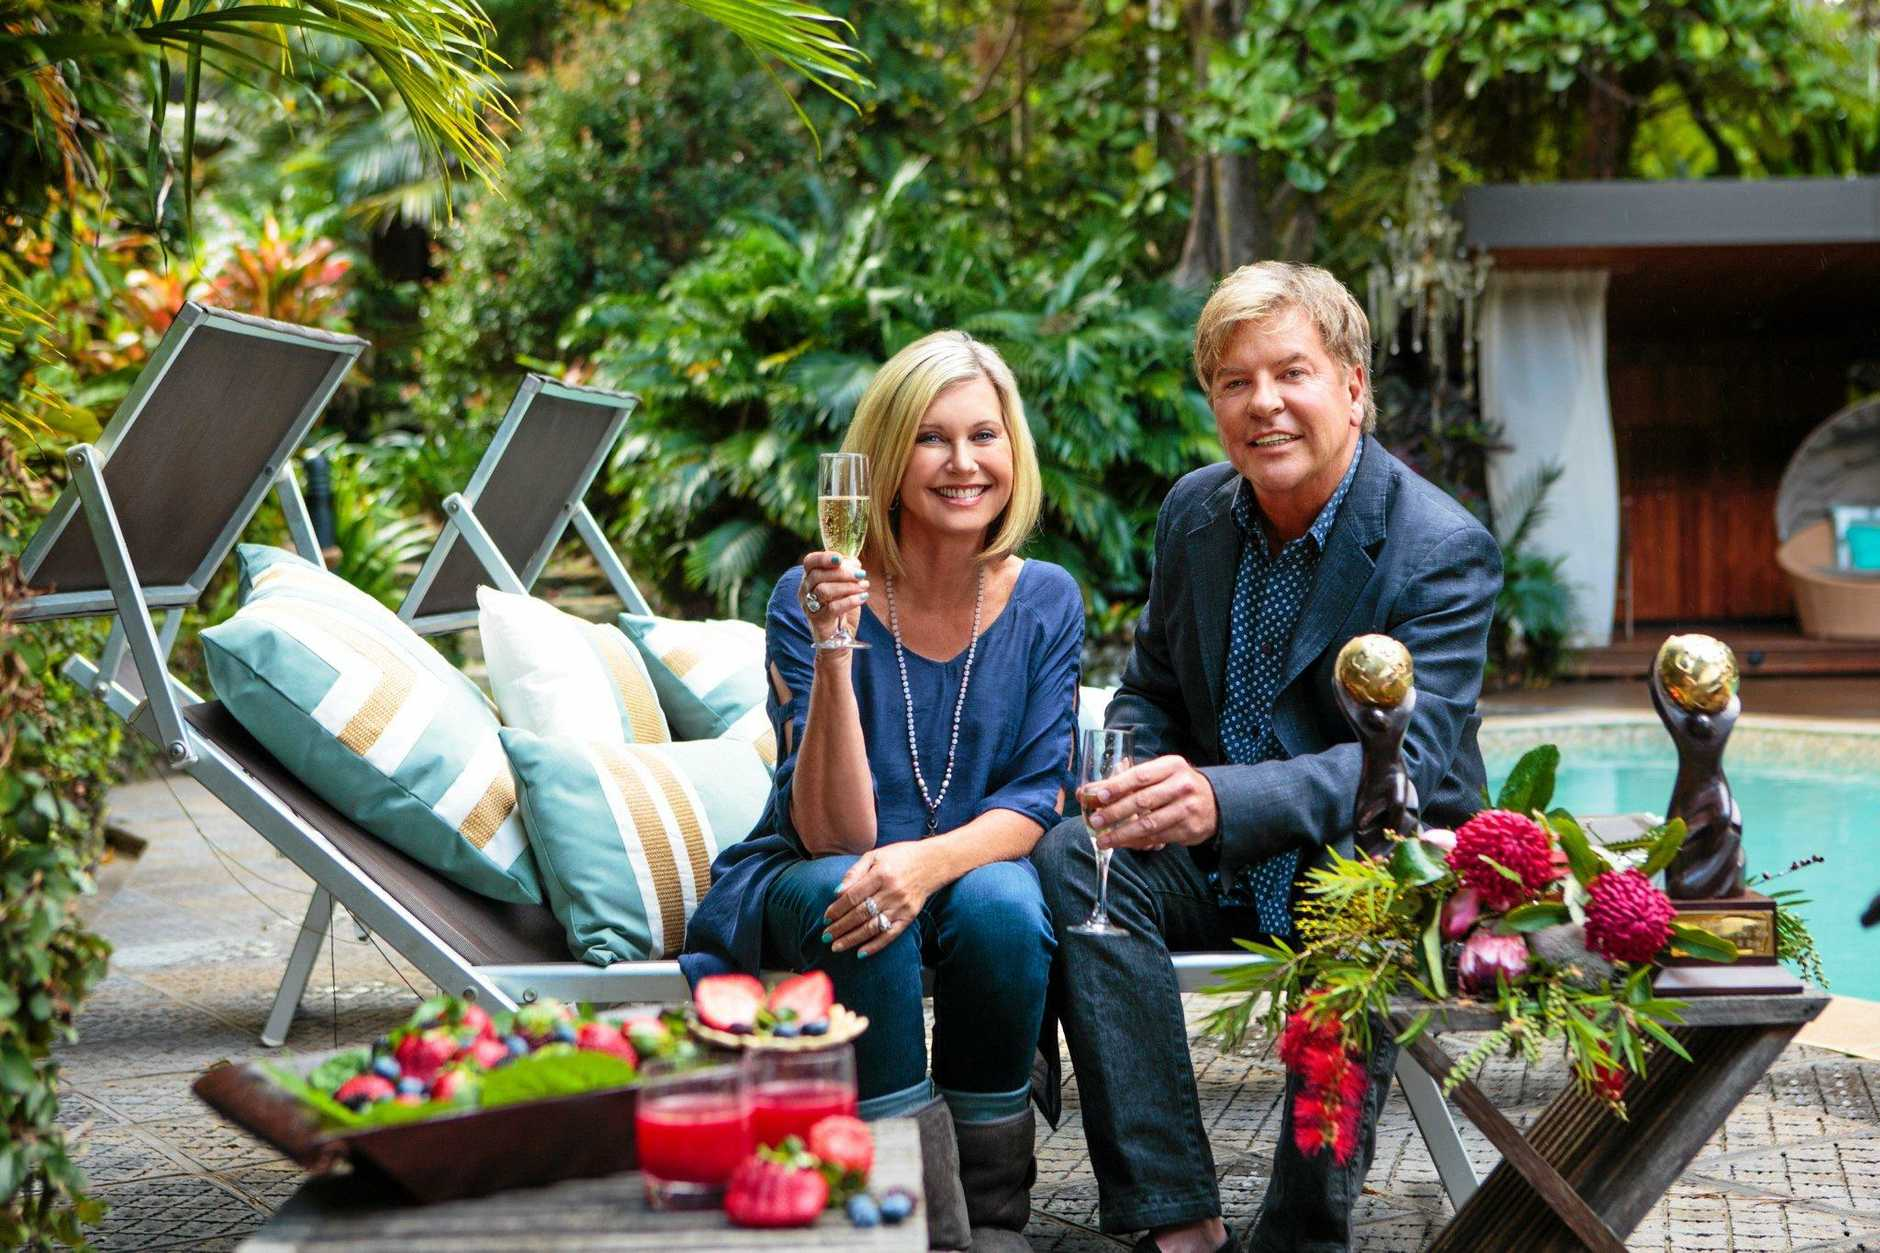 WORLD'S BEST: Olivia Newton-John and Gregg Cave celebrate Gaia Retreat & Spa being named World's Best Day Spa as well as the Retreat's 10th anniversary. Photo Contributed